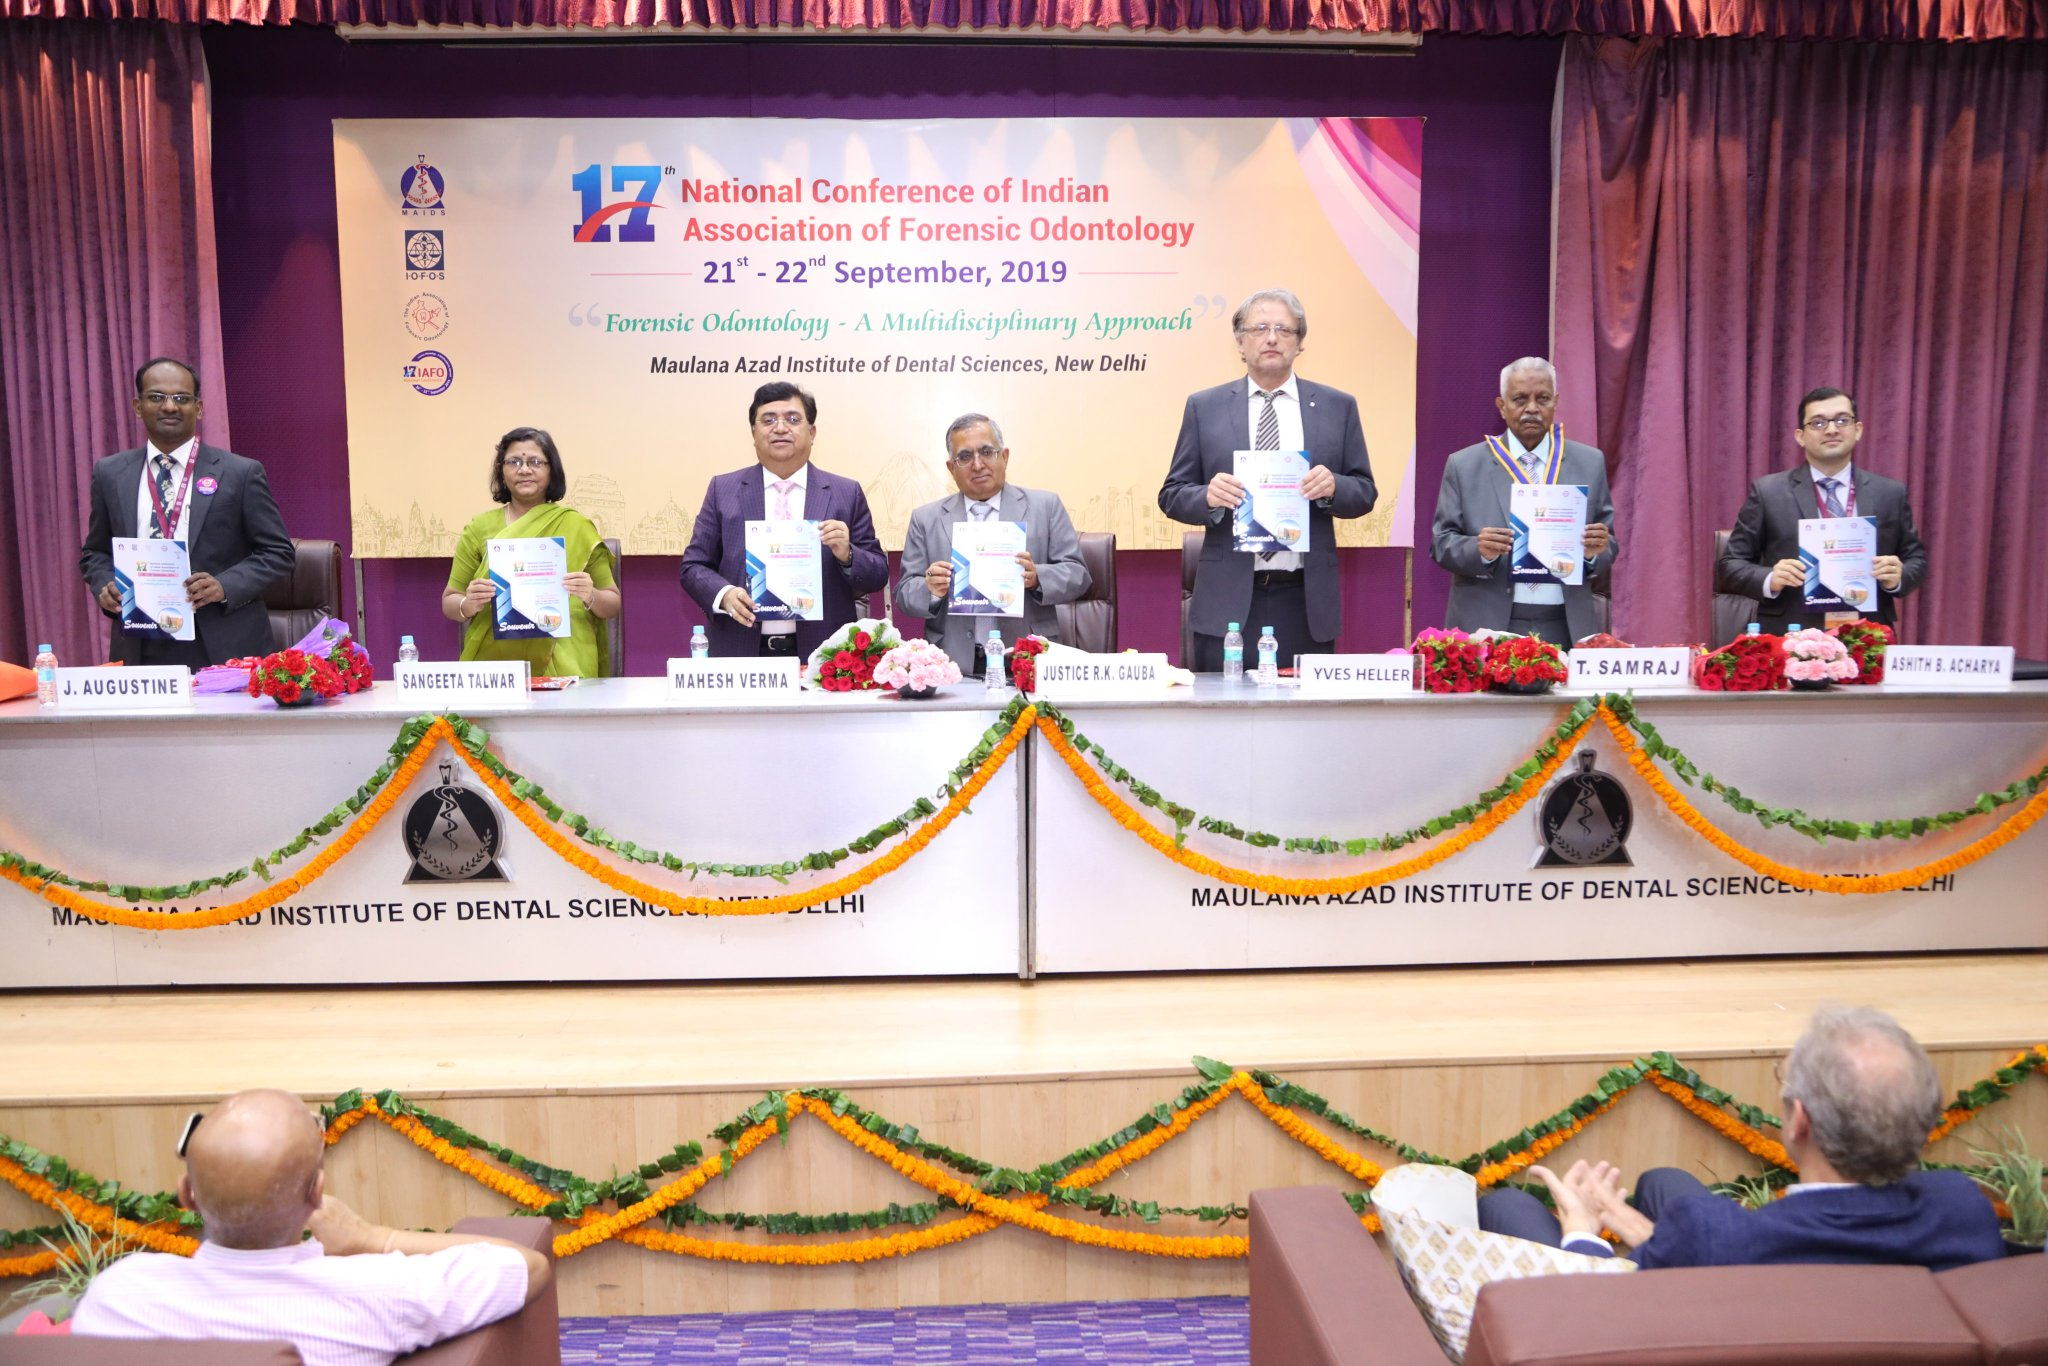 Icrc New Delhi On Twitter The Just Concluded 17th National Conference Of Indian Association Of Forensic Odontology Organised By Maulana Azad Institute Of Dental Sciences New Delhi Together With Icrc Is The Largest